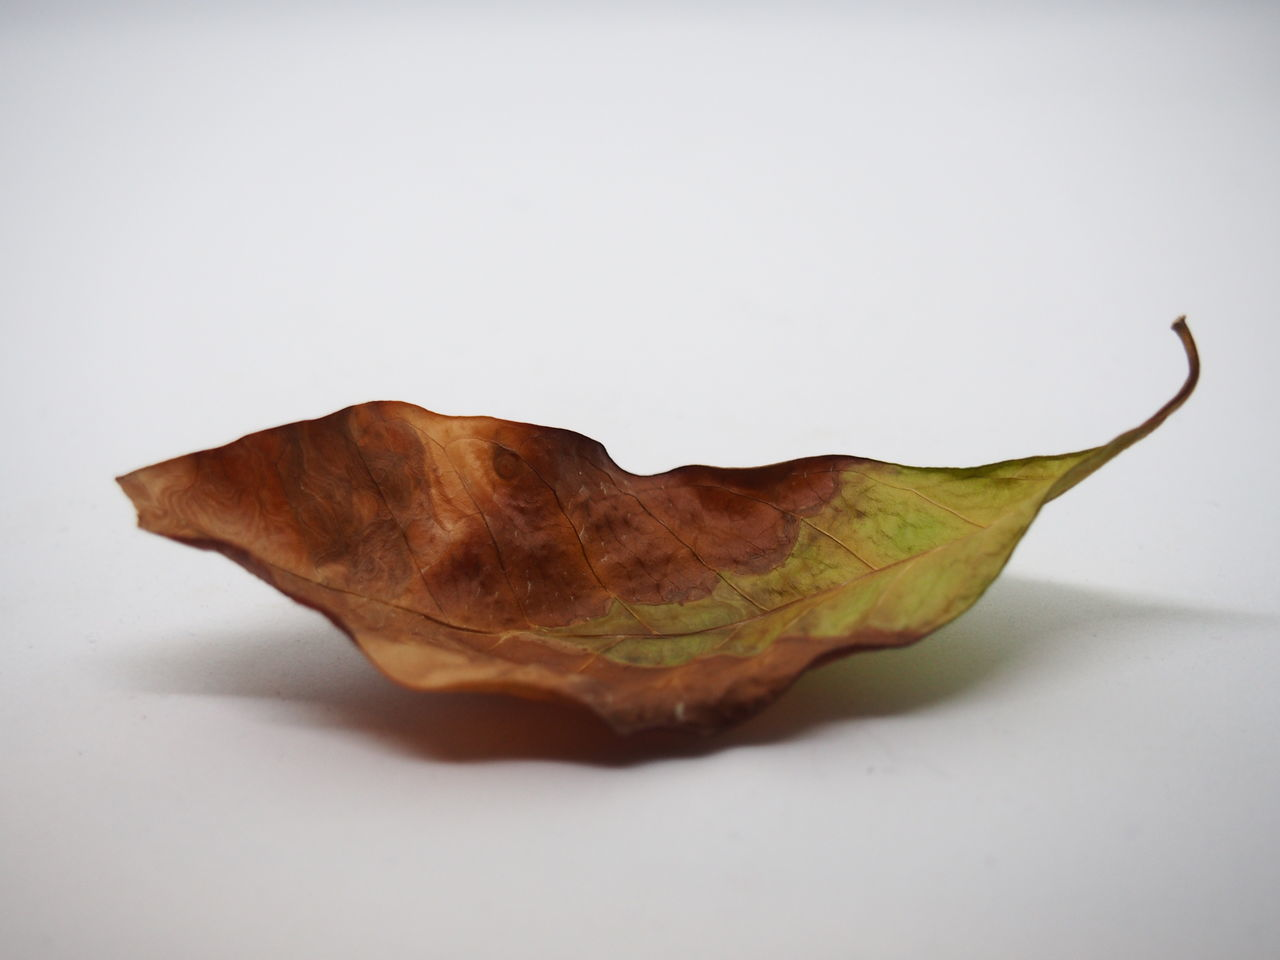 Close-up Day Fragility Leaf Leaves No People Studio Photography Studio Shot White Background